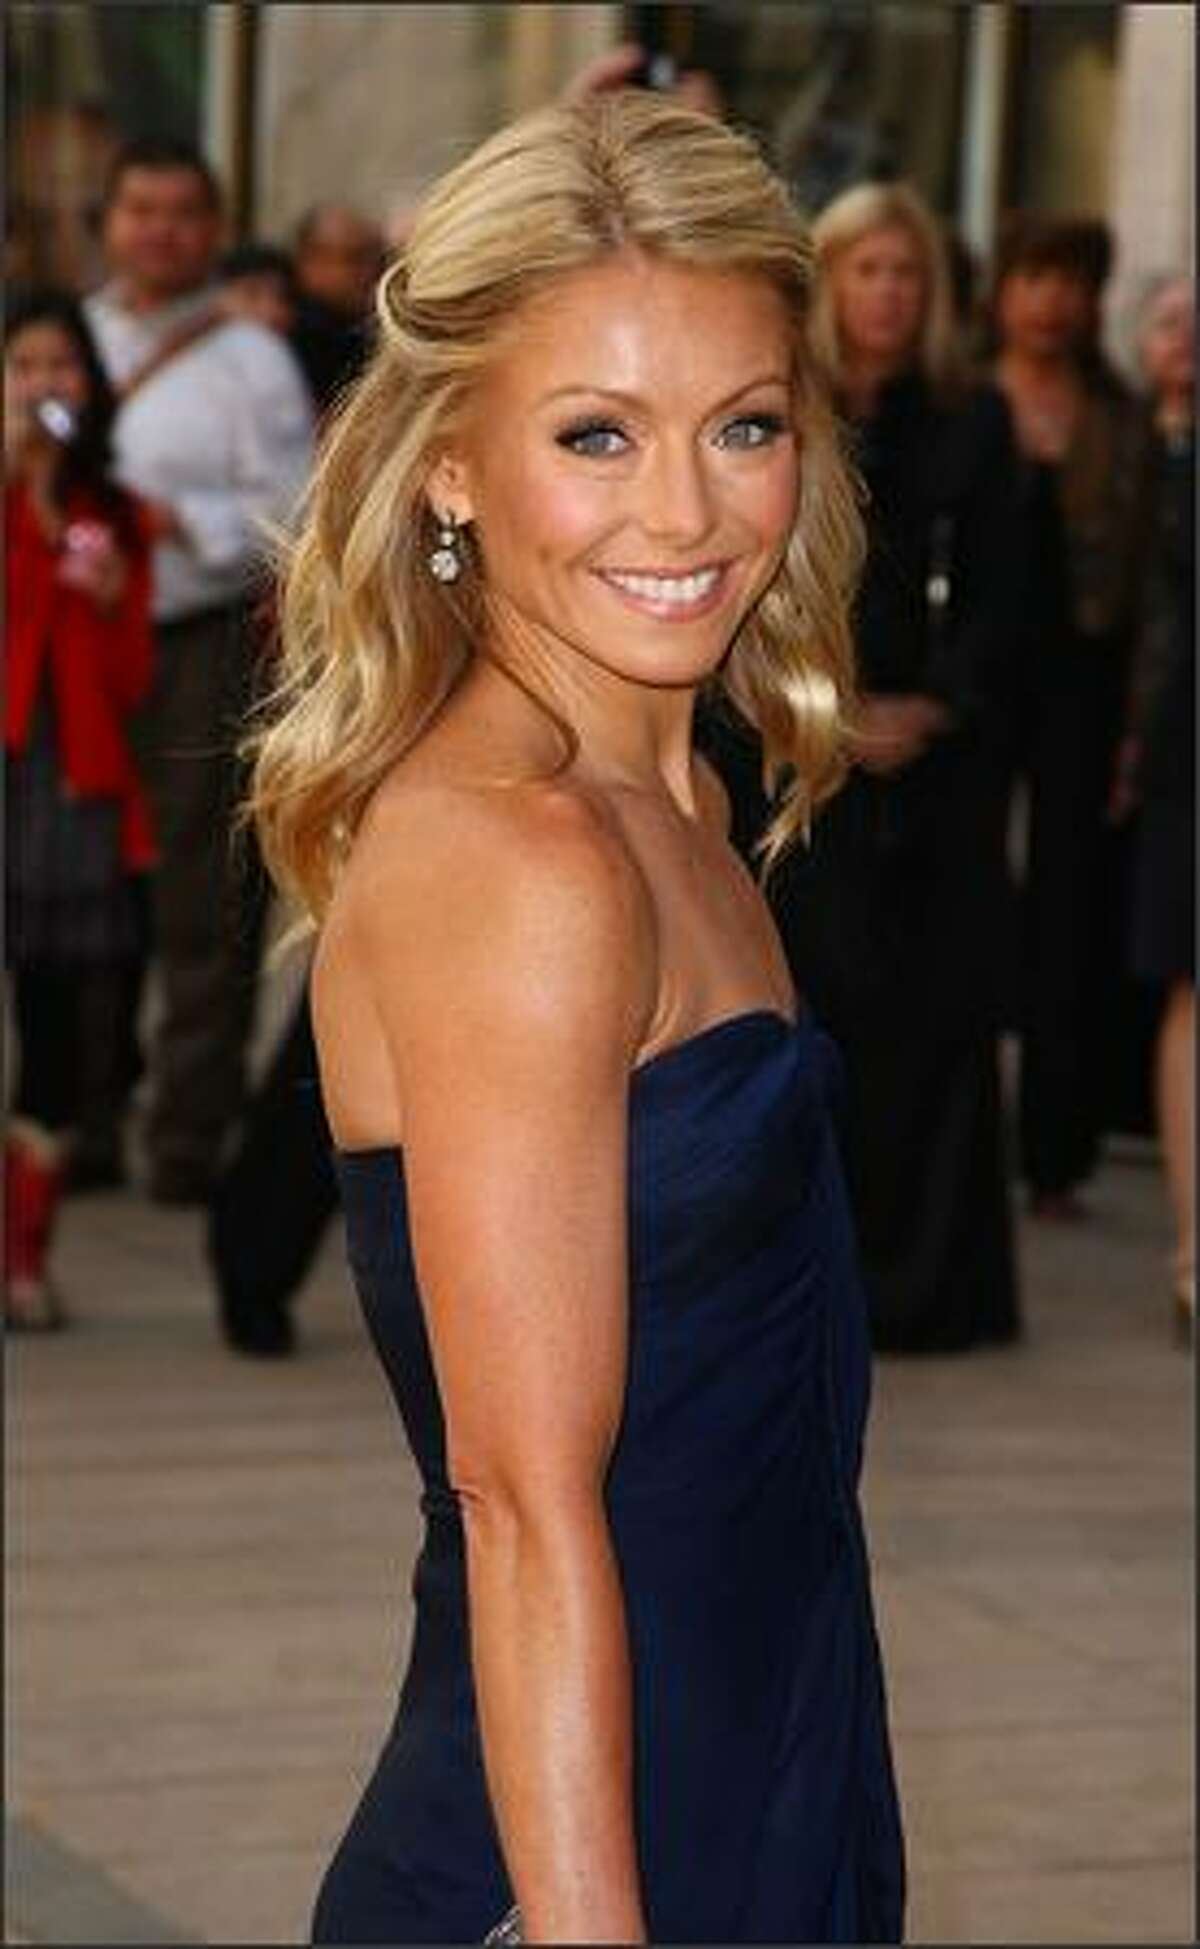 Kelly Ripa attends the 69th Annual American Ballet Theatre Spring Gala at The Metropolitan Opera House in New York City.